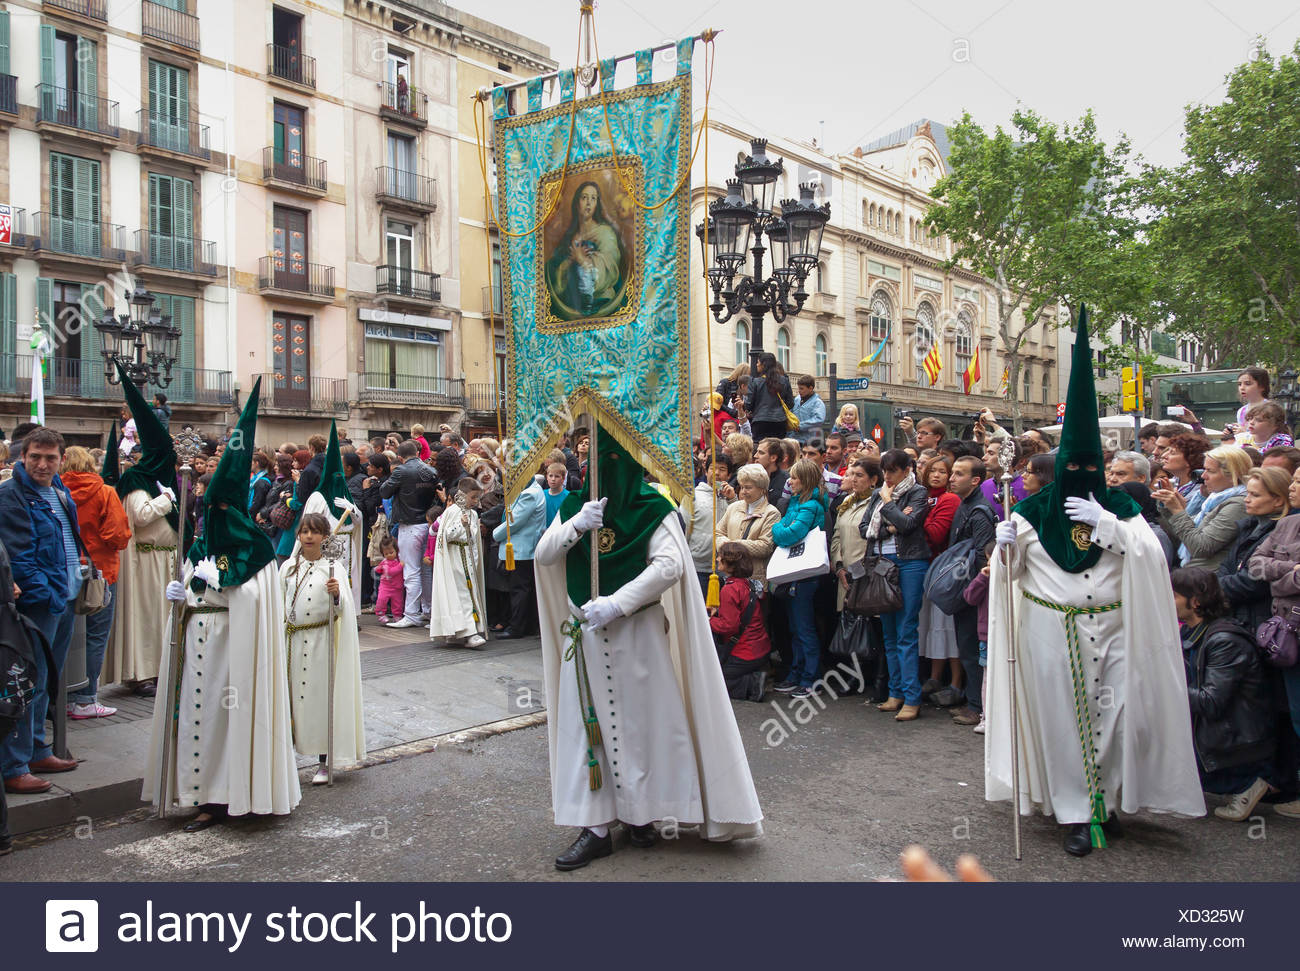 Penitents with crosses at the Semana Santa procession, Holy Week, Barcelona, Catalonia, Spain, Europe - Stock Image